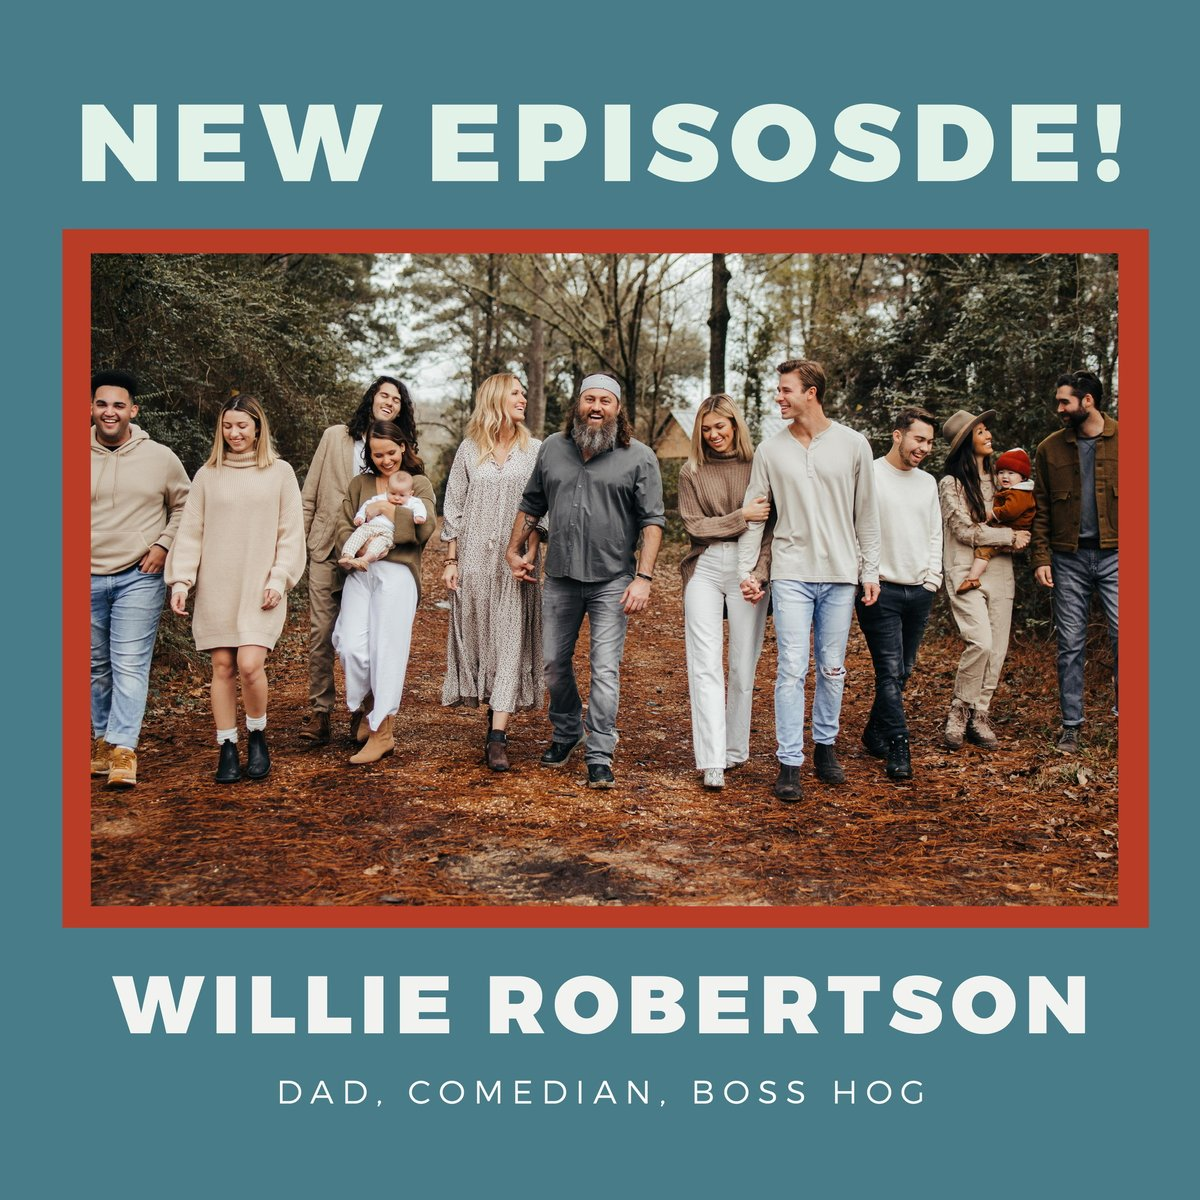 Dad. Comedian. Boss Hog. This week's episode on the podcast episode was too fun!! 💥Go listen!! #FAM   https://podcasts.apple.com/us/podcast/whoa-thats-good-podcast/id1433974017…